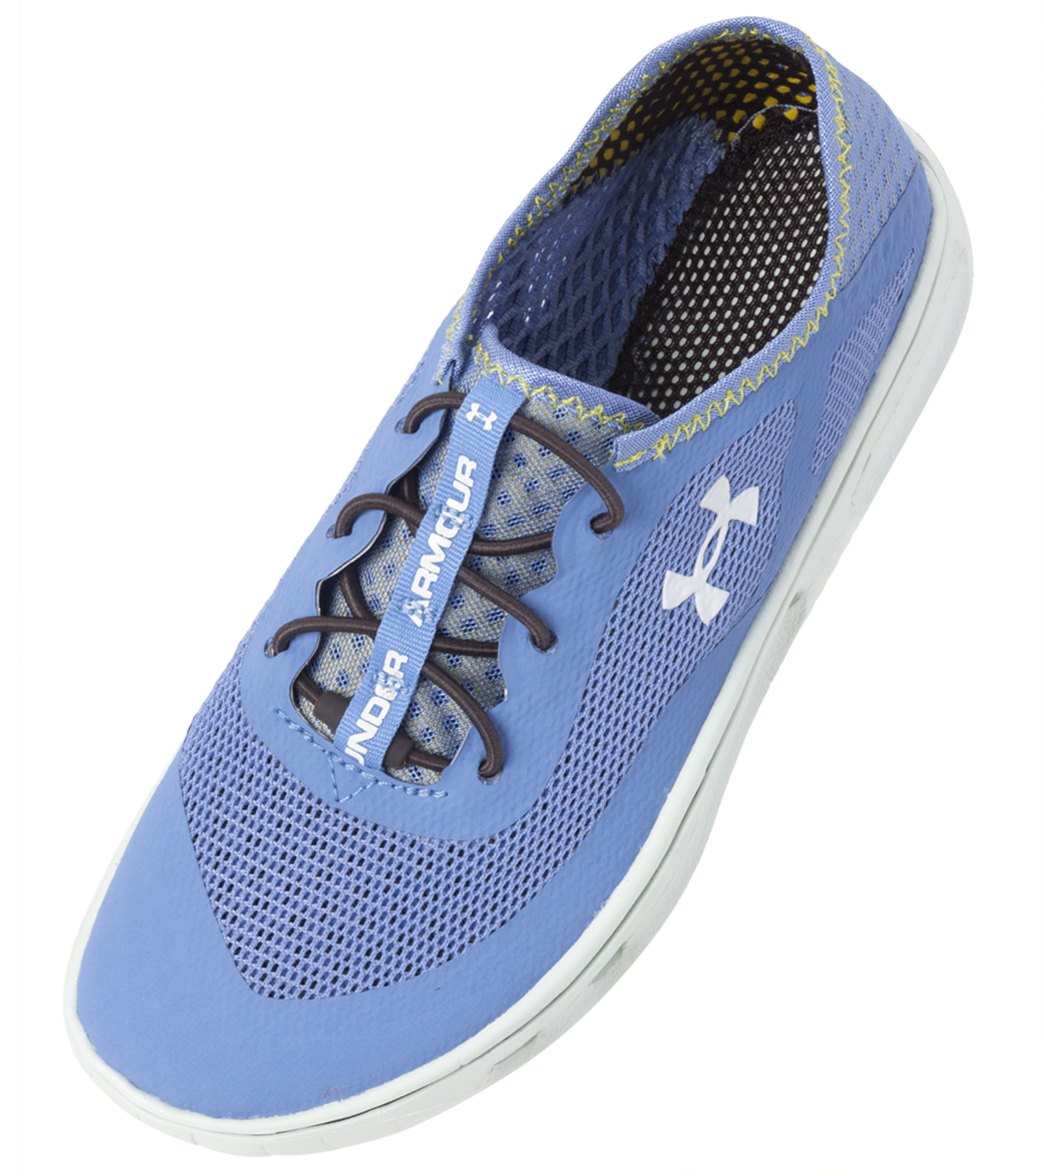 7fe2f4260f64 Under Armour Women s Hydro Deck Water Shoes at SwimOutlet.com ...